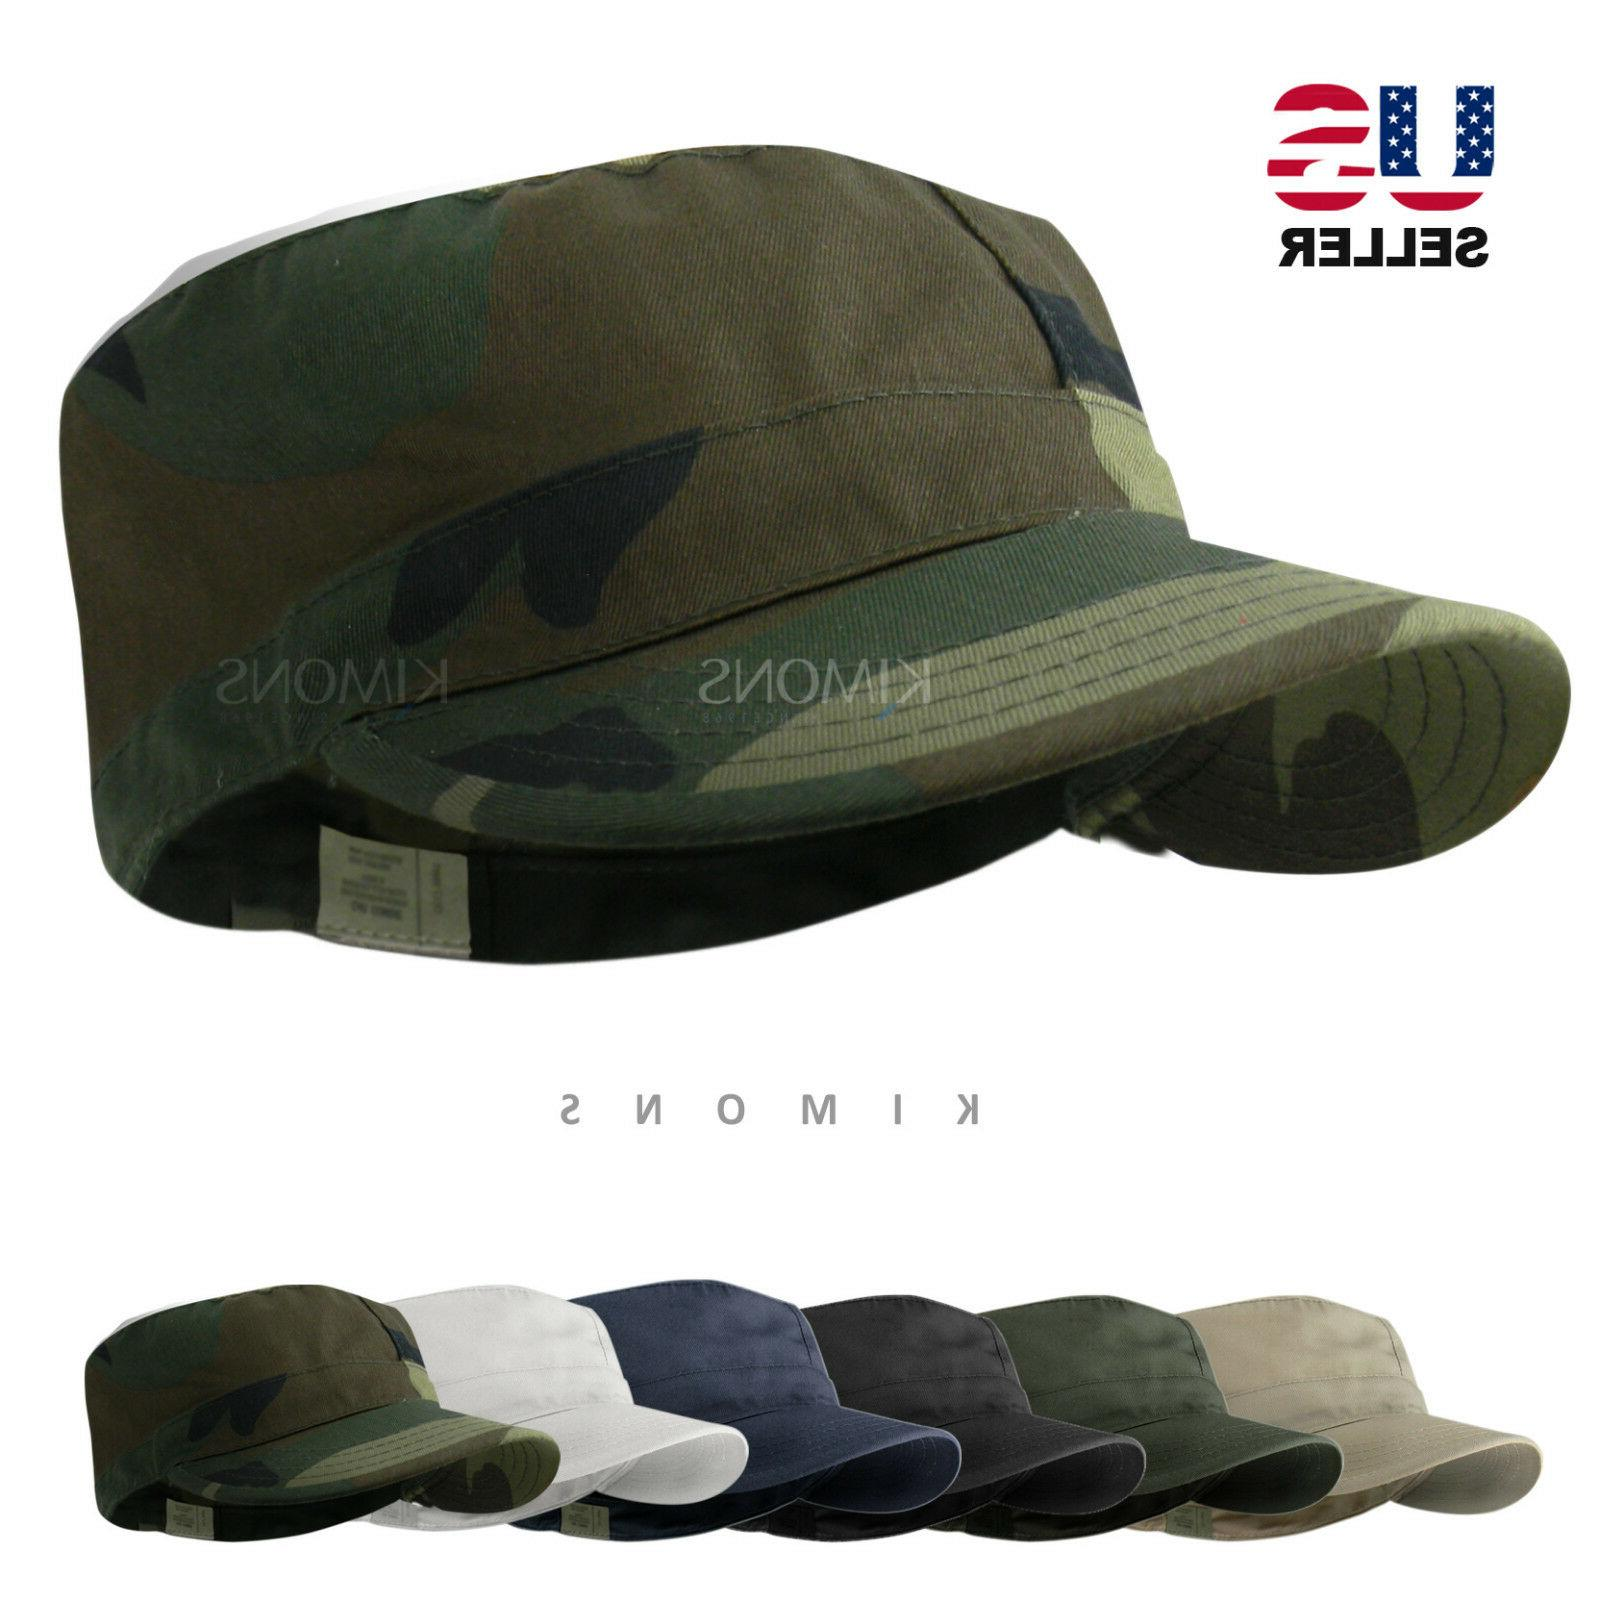 bdu fitted army cadet military cap hat